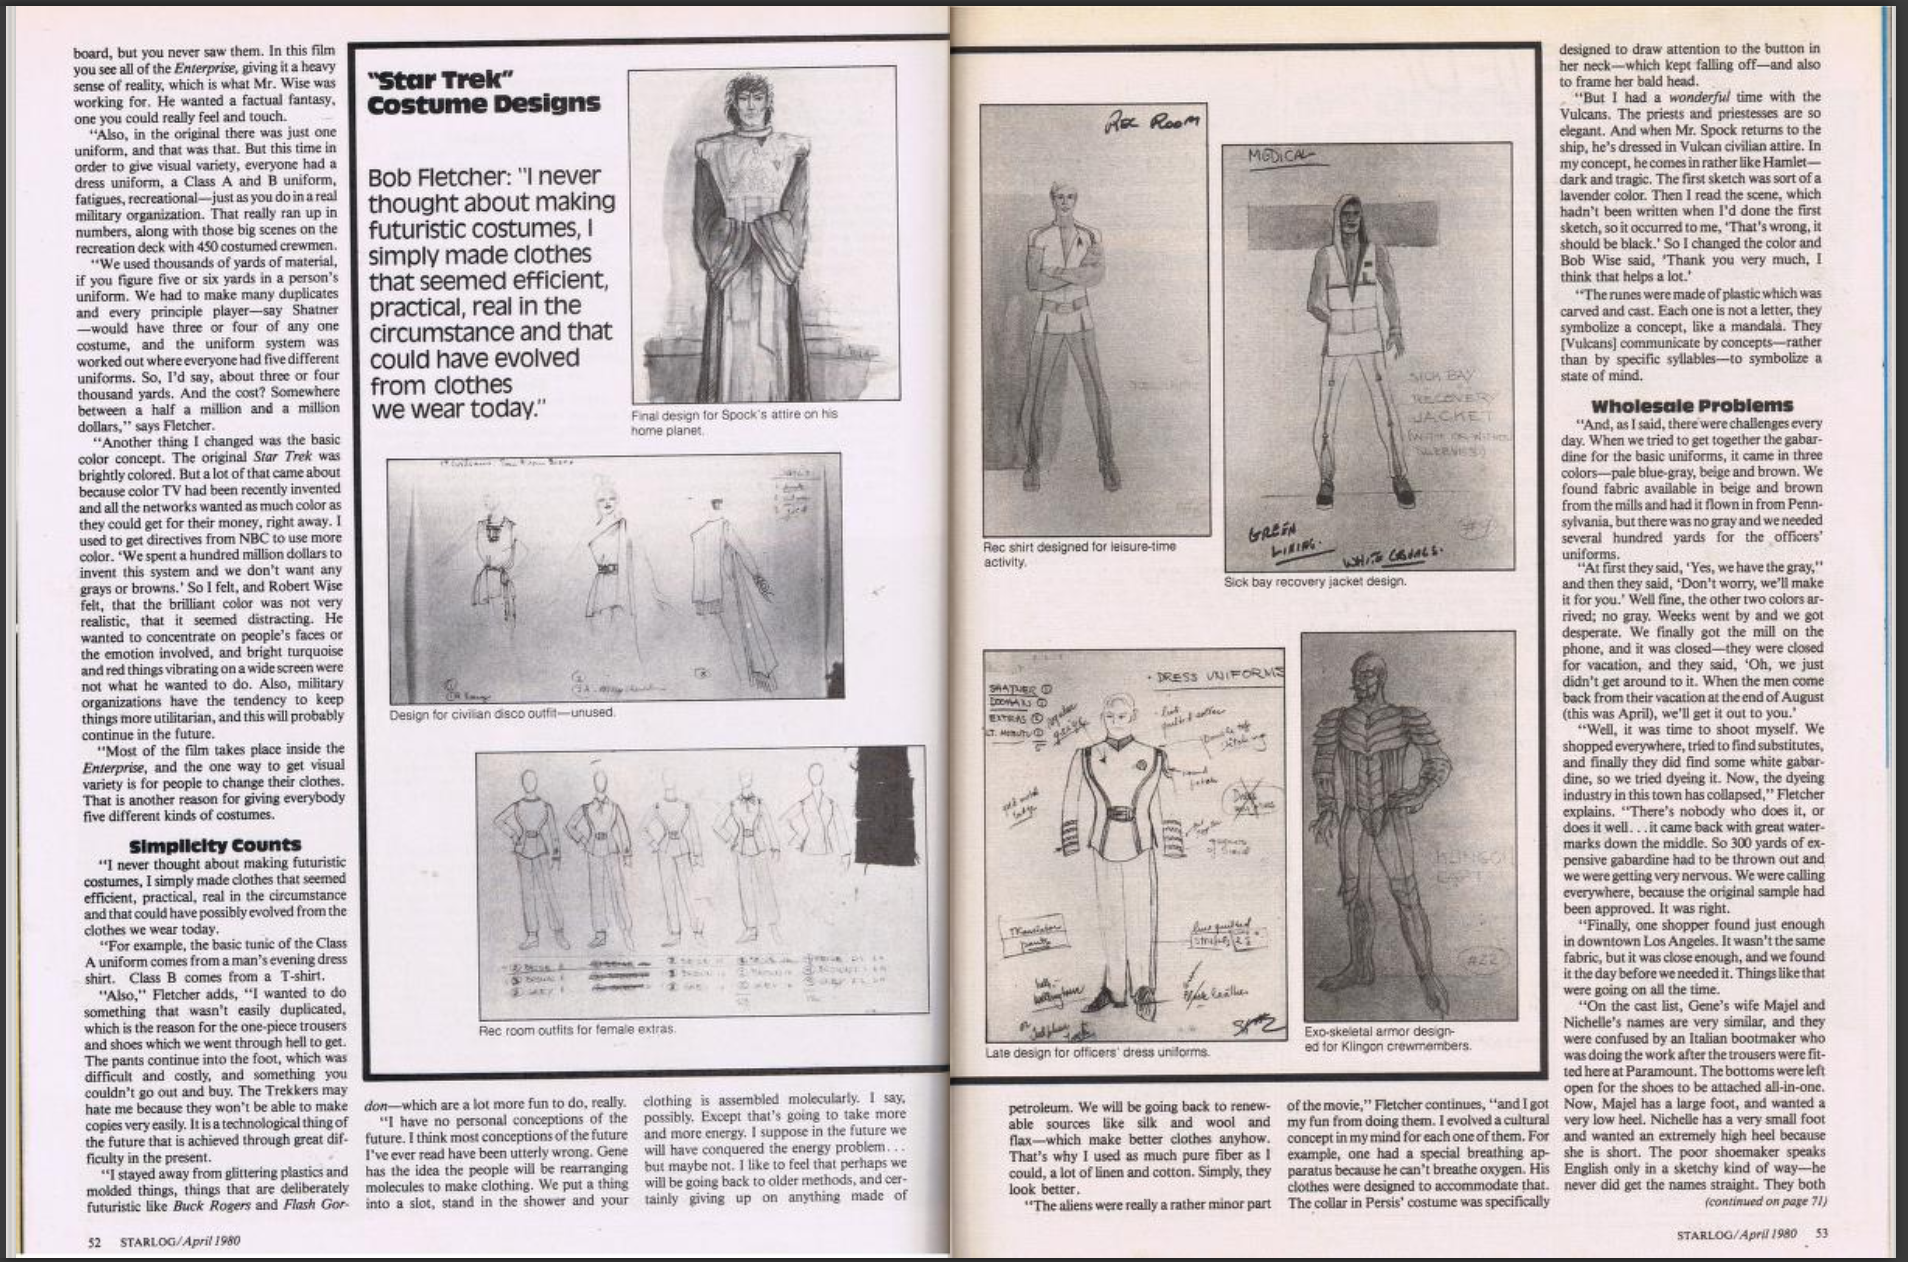 Double page spread of article The Star Trek Aliens from Starlog Magazine, Issue 33, pages 52-53